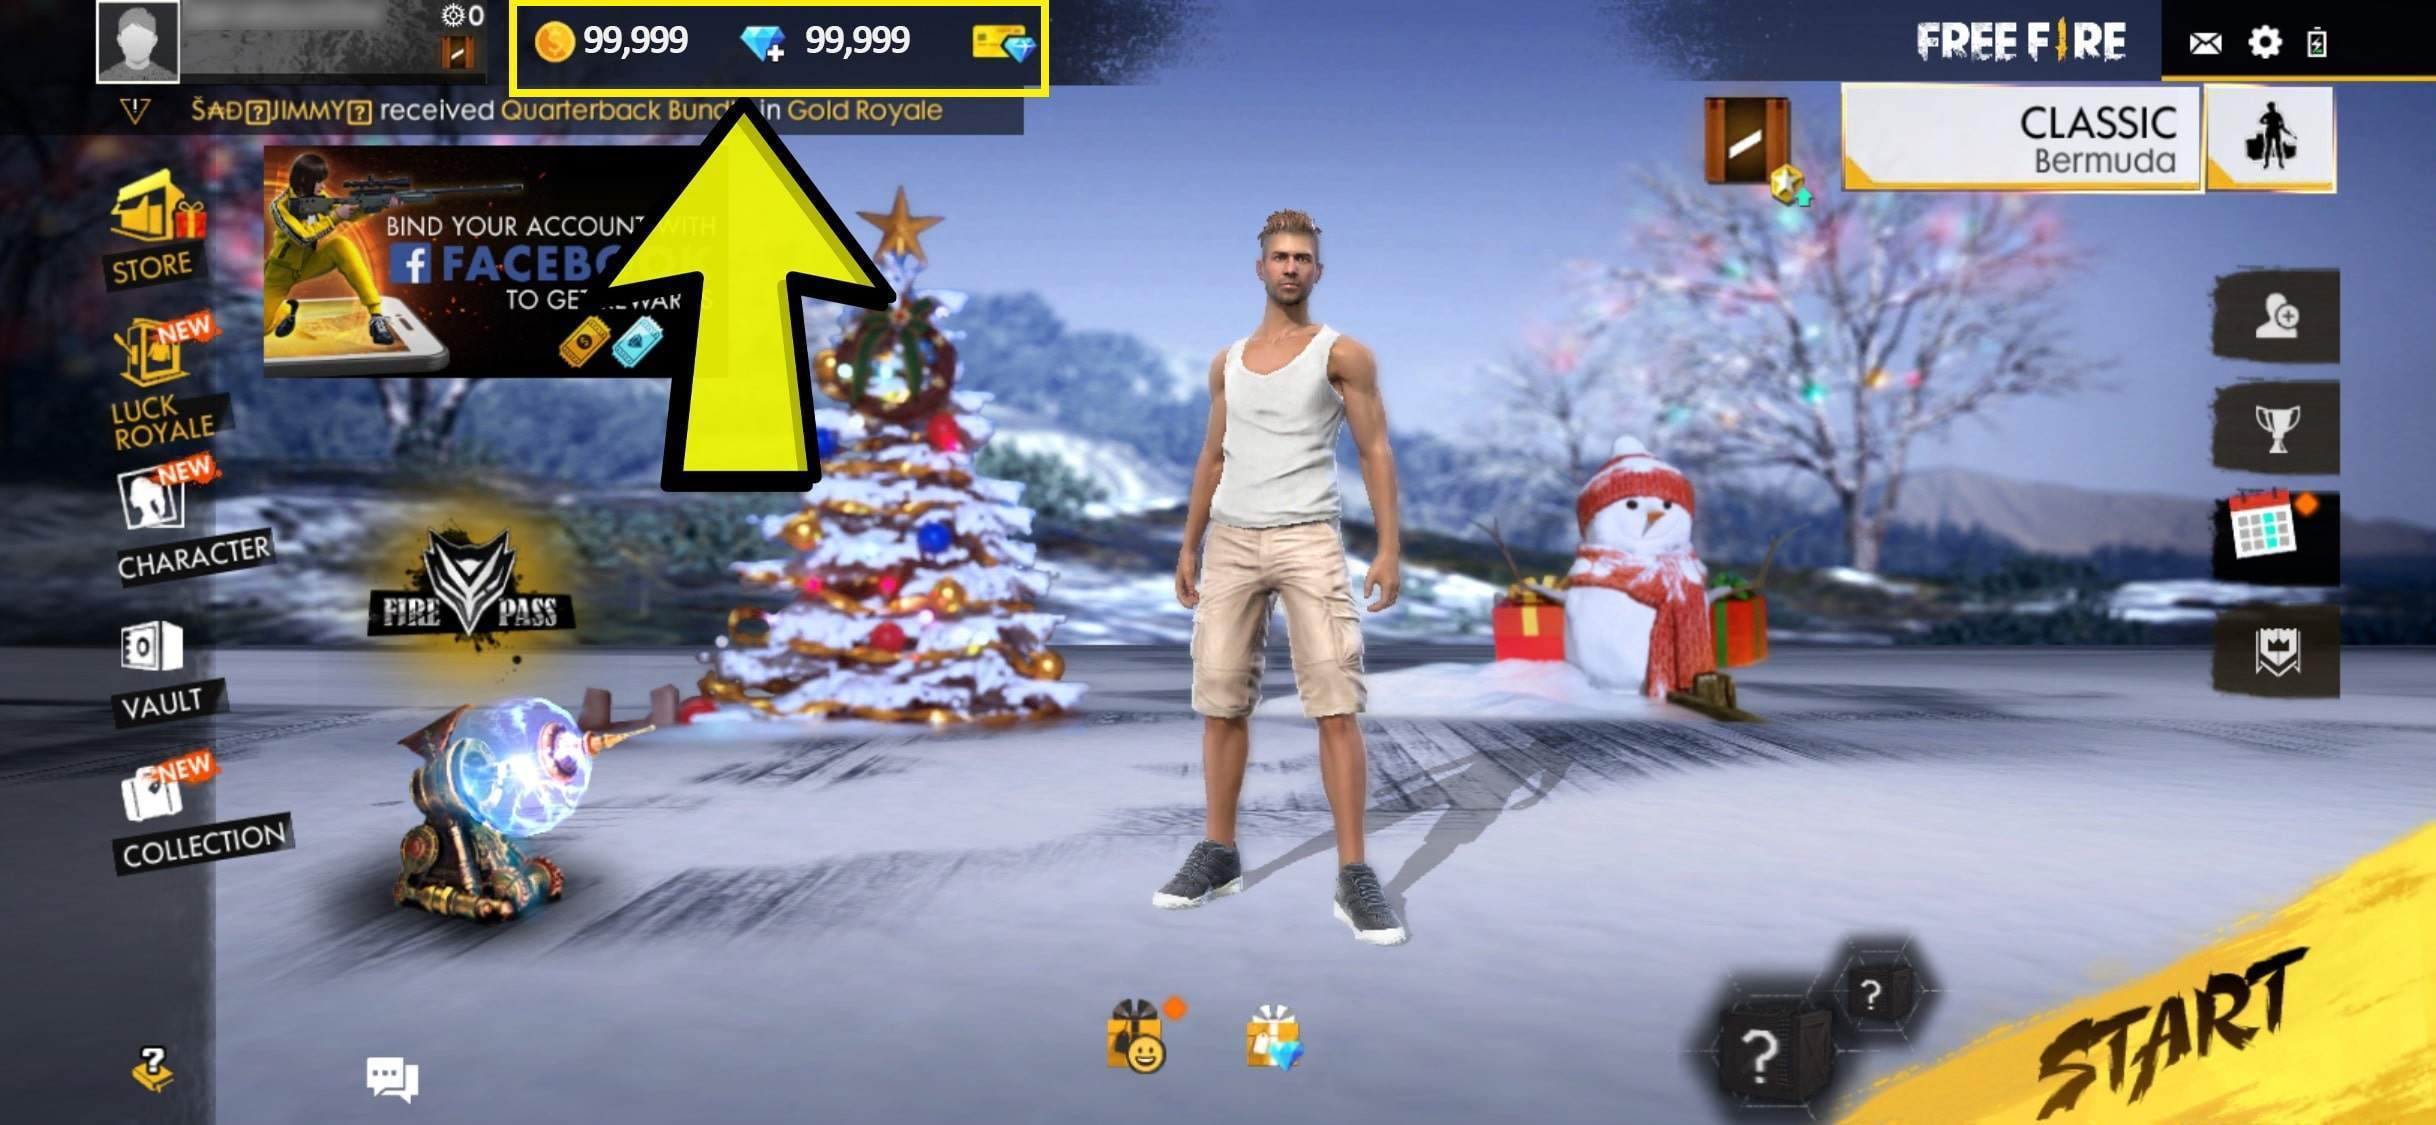 Claim Freefire Unlimited Coins and Diamonds For Free! 100% Working [2021]